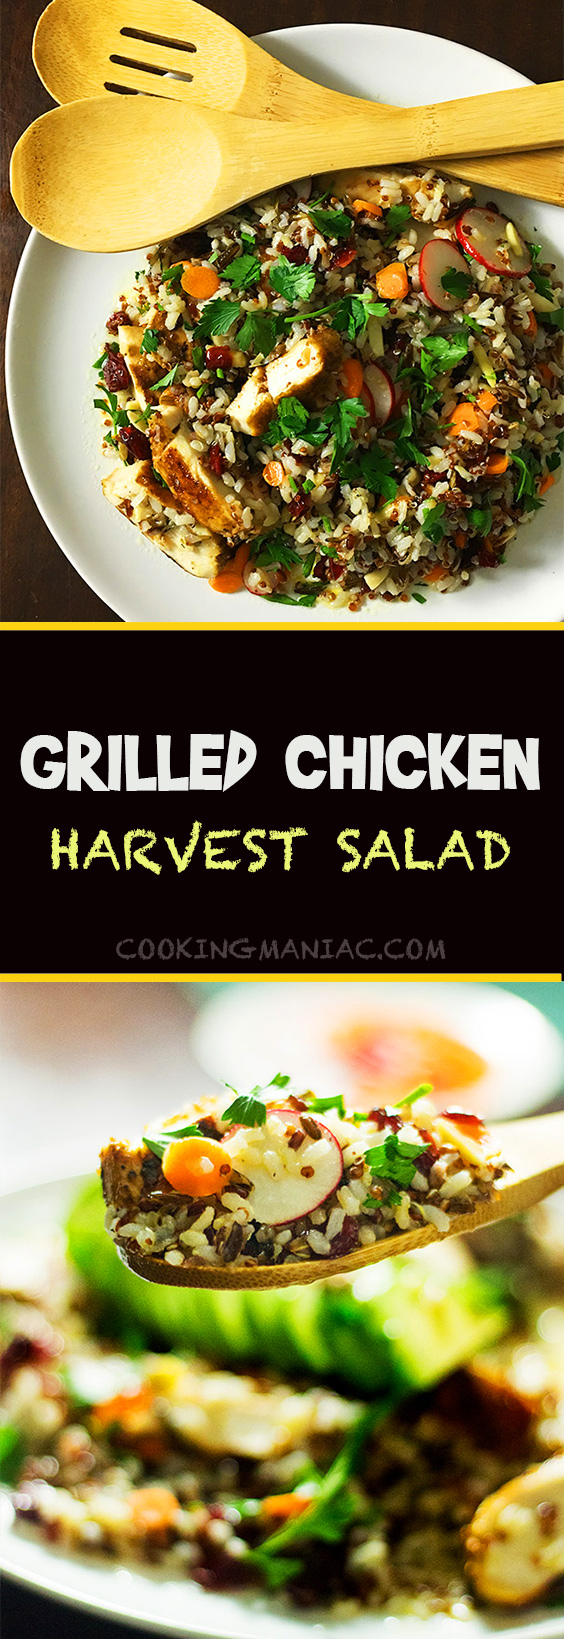 Grilled-Chicken-Harvest-Salad-Long-Pin